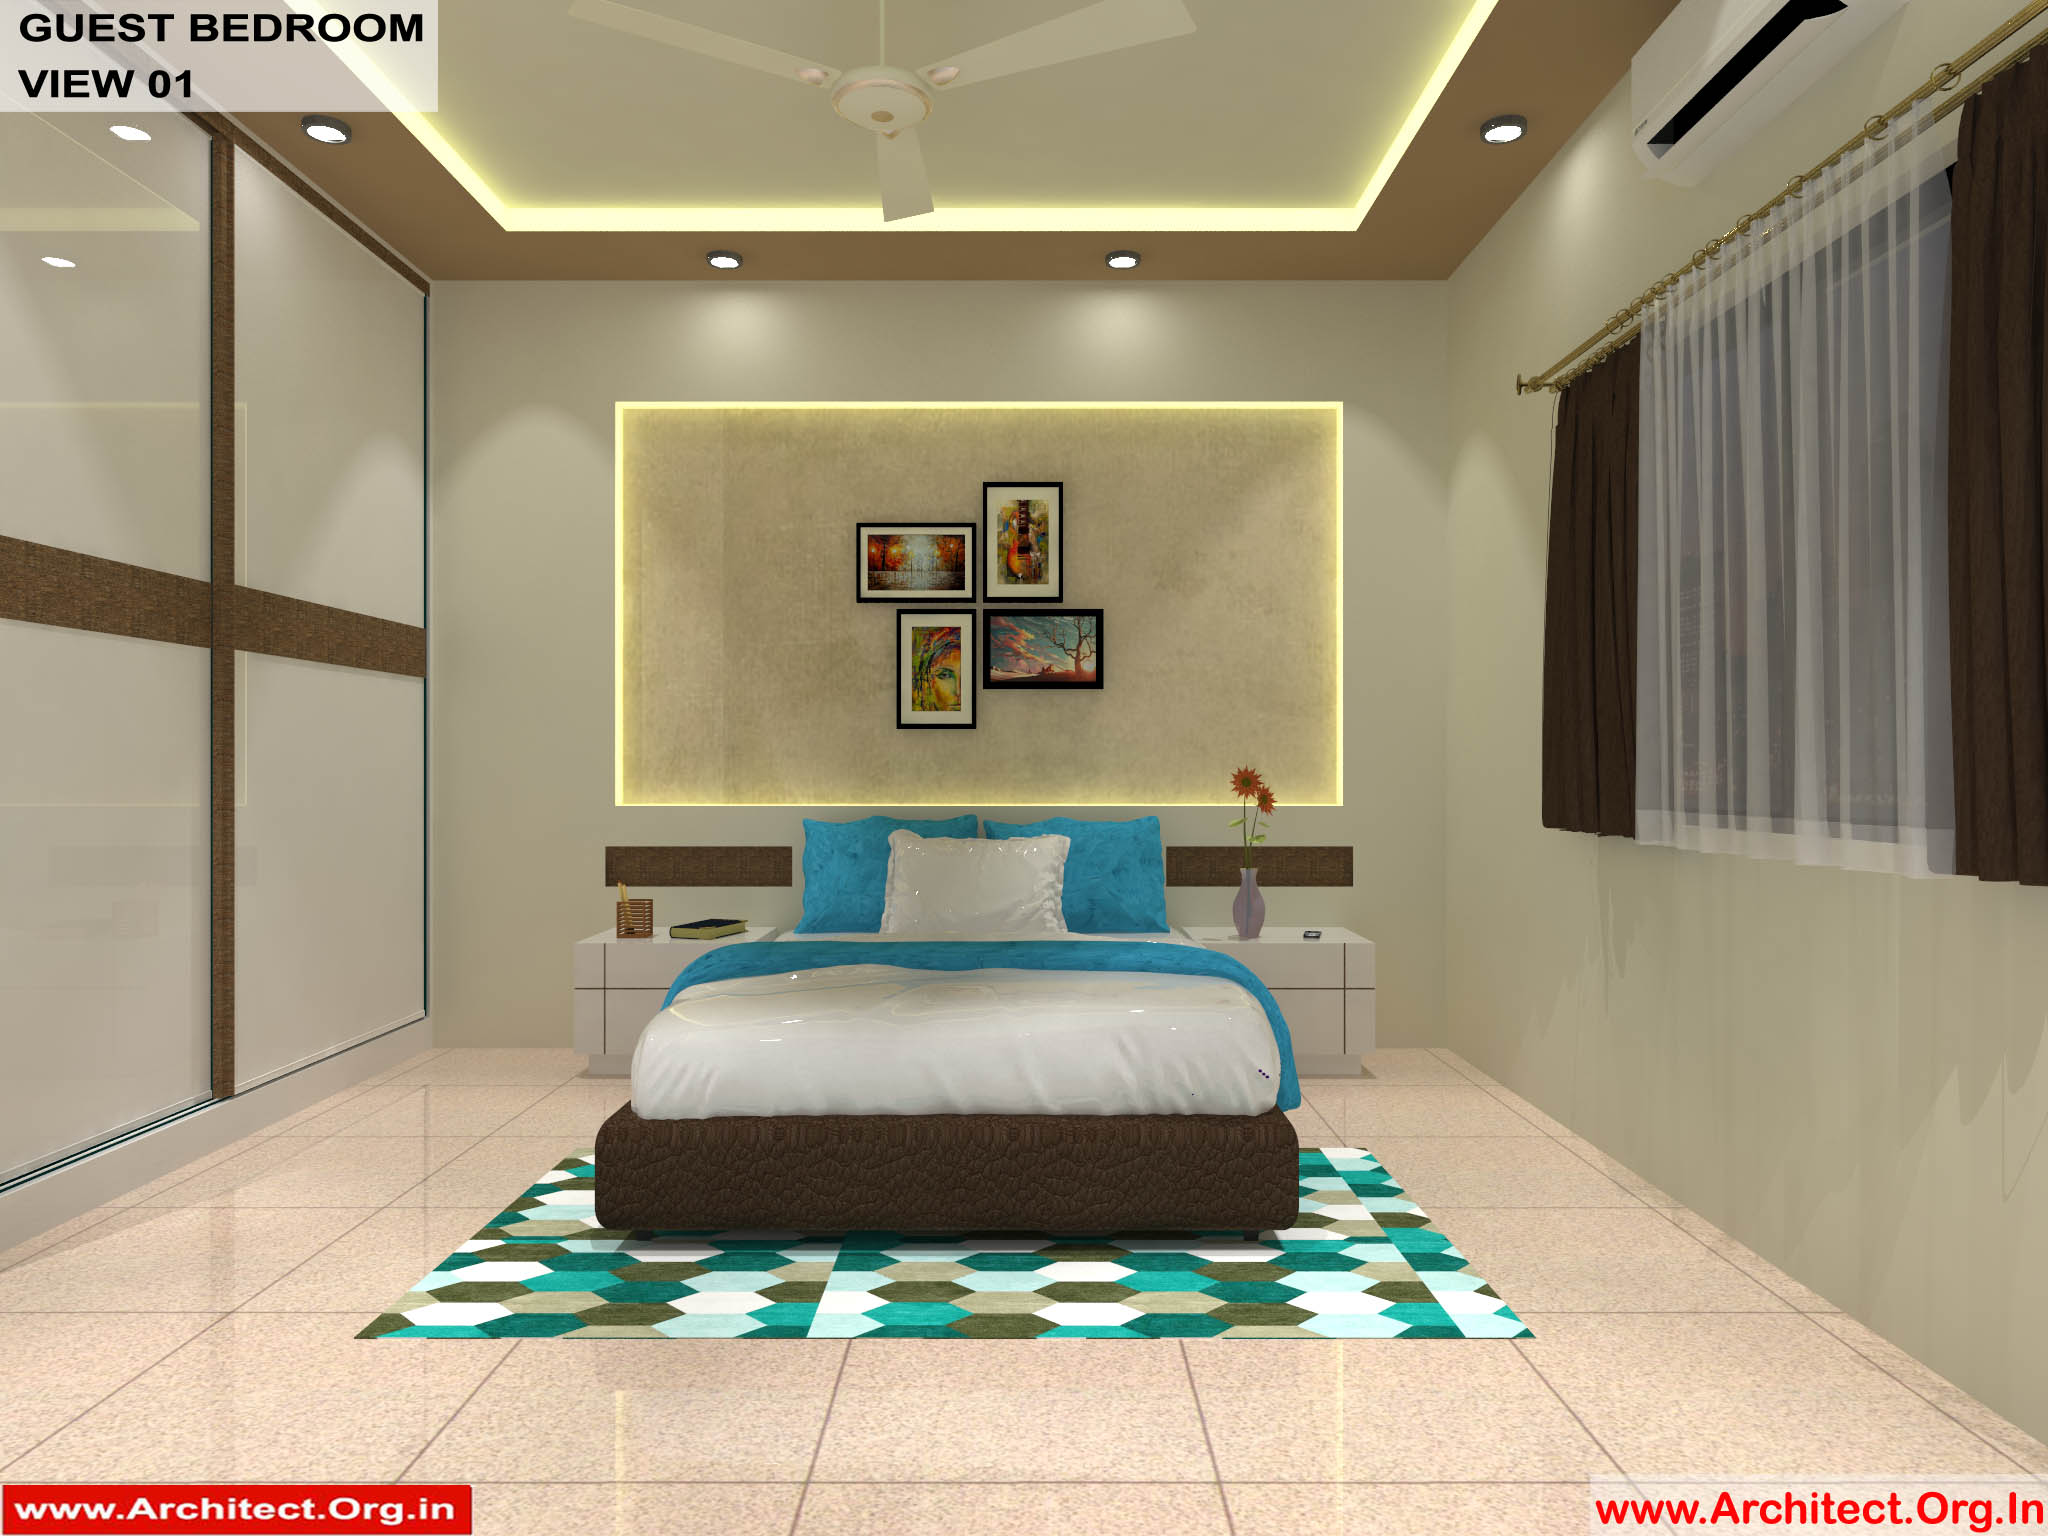 Dr Sandeep Ada Nayudupet Andhra Pradesh House Interior Guest Bedroom View 01 Architect Org In